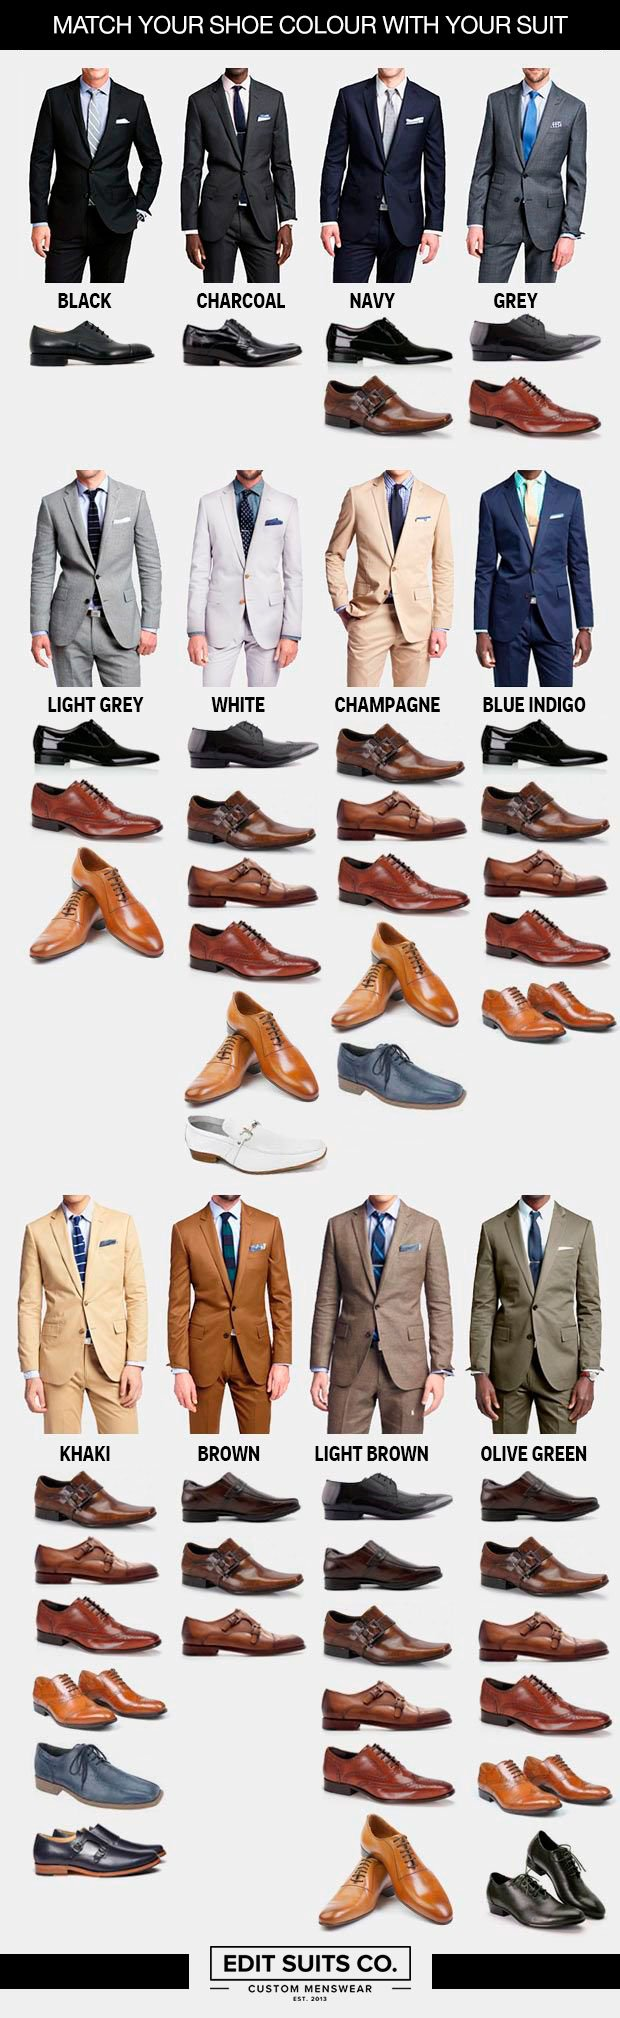 How to choose the perfect pair of shoes for every colour of suit